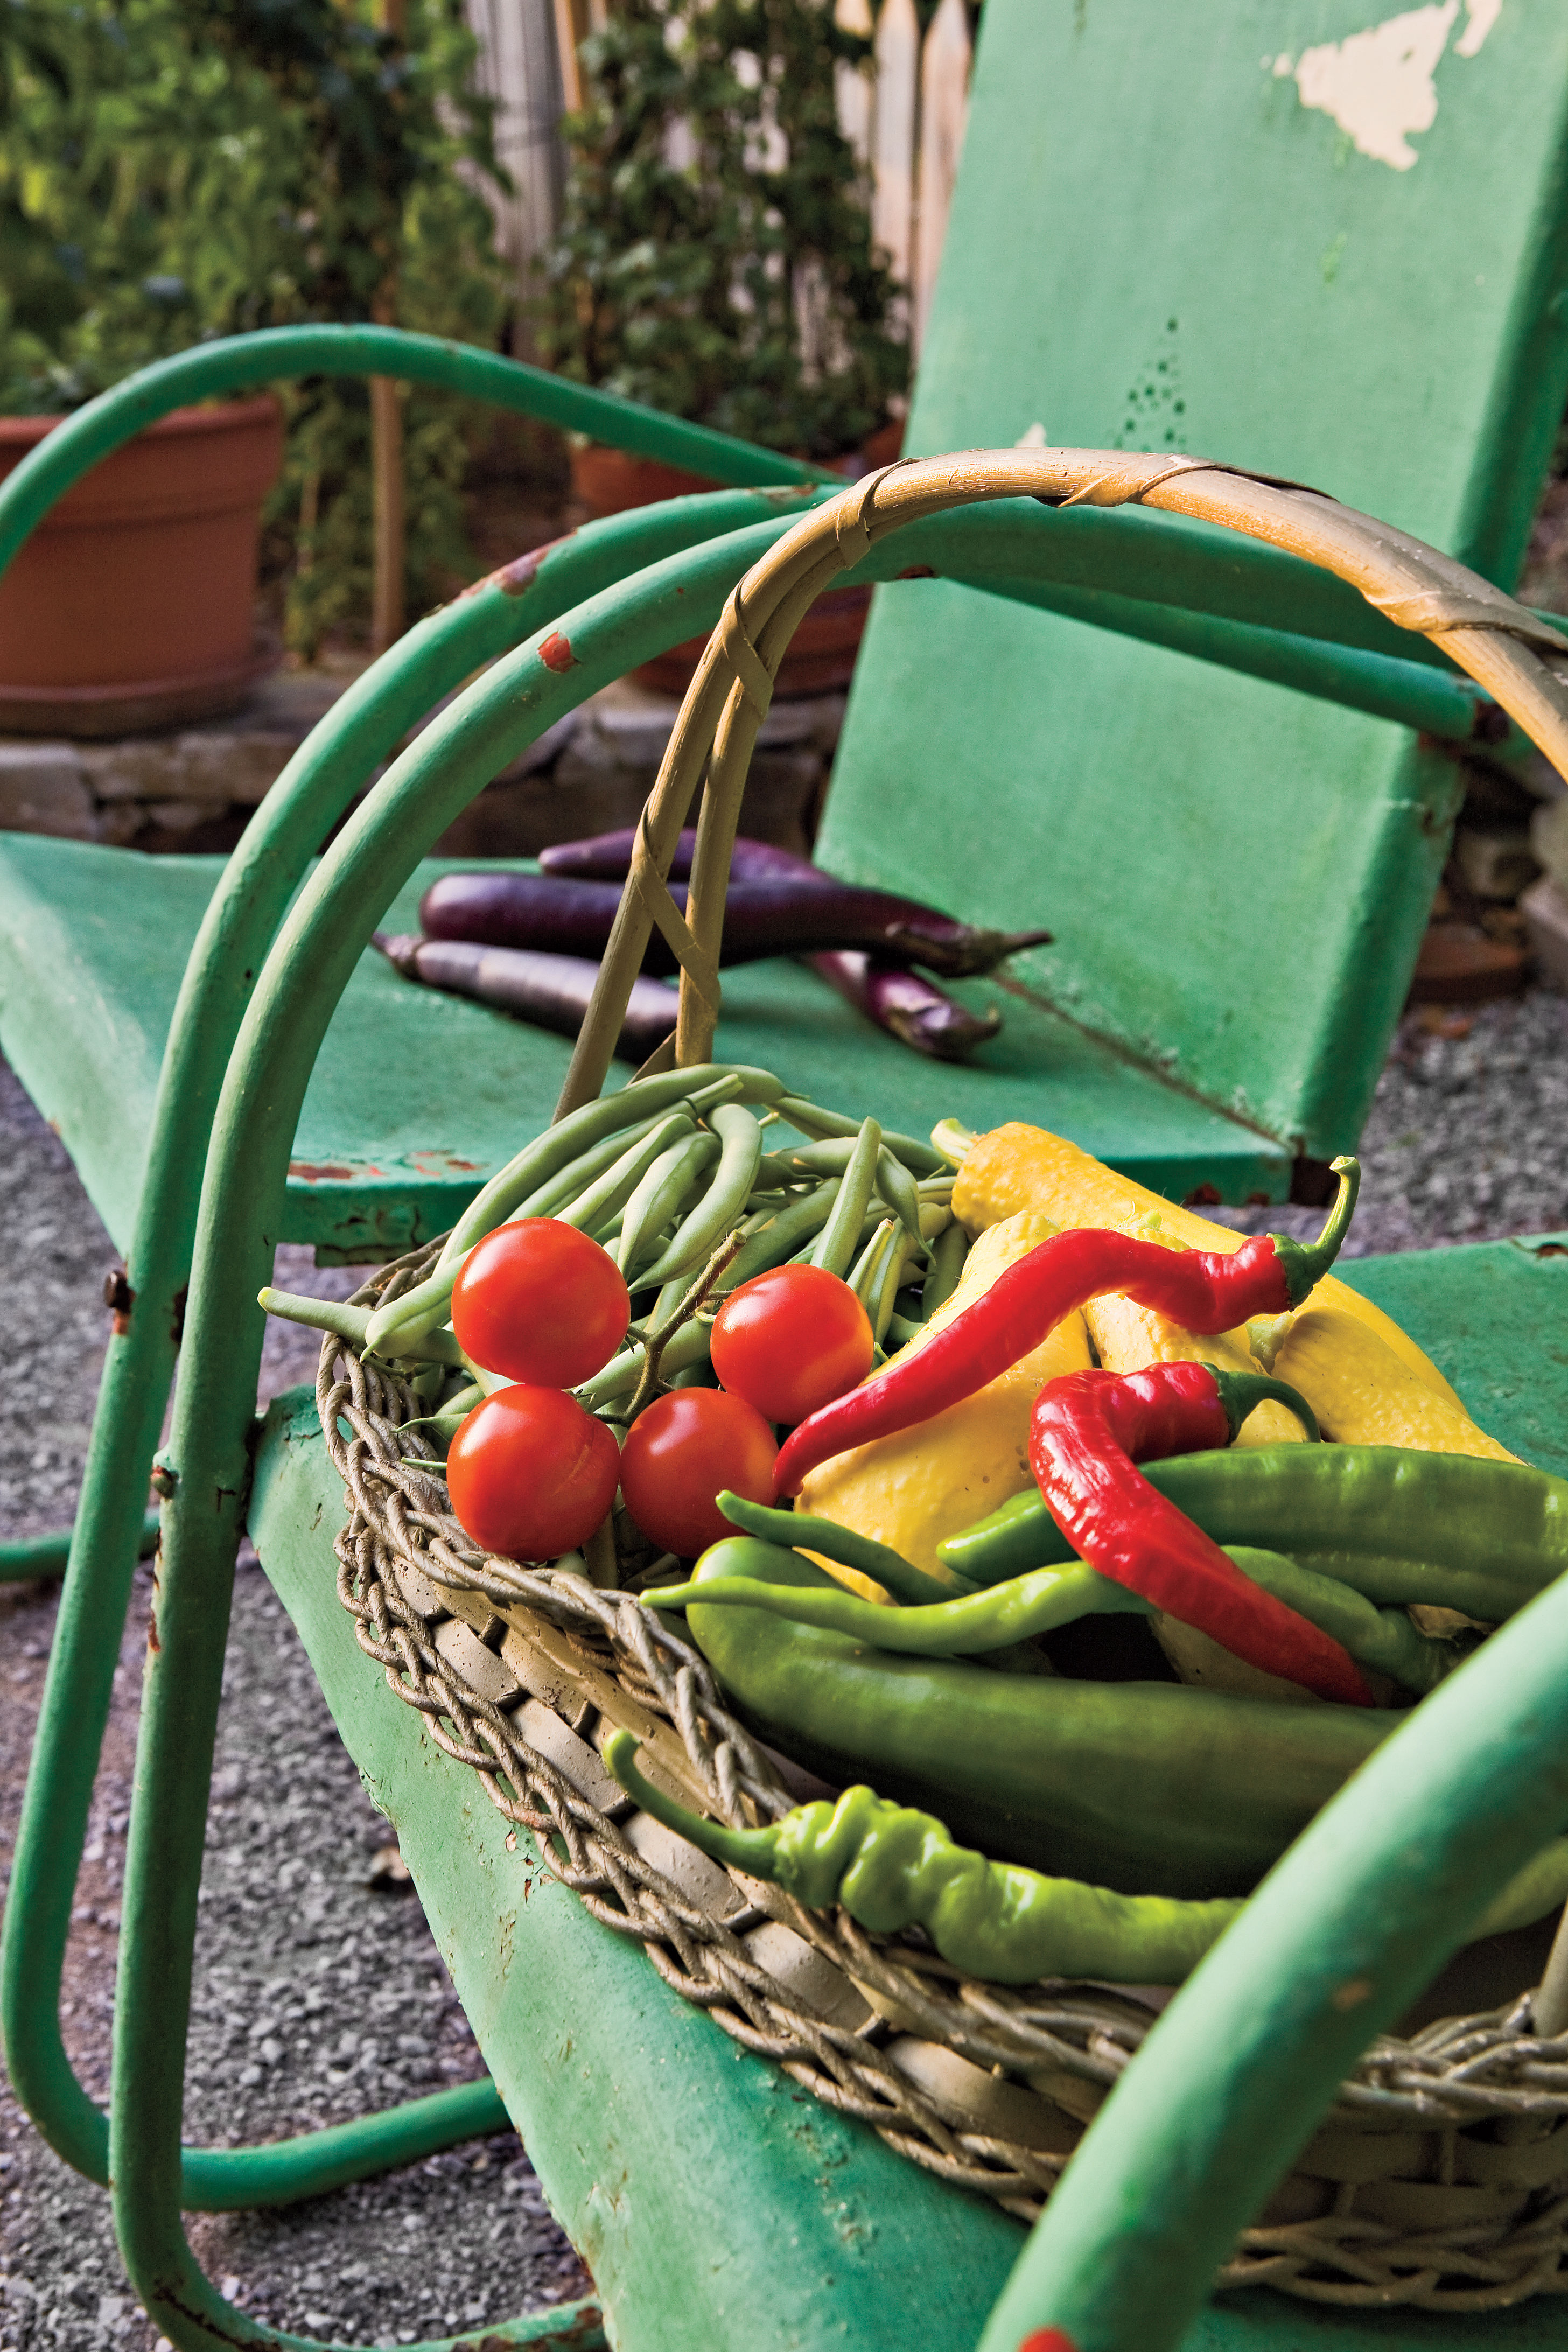 Growing Peppers in Your Garden From Seeds or Transplants